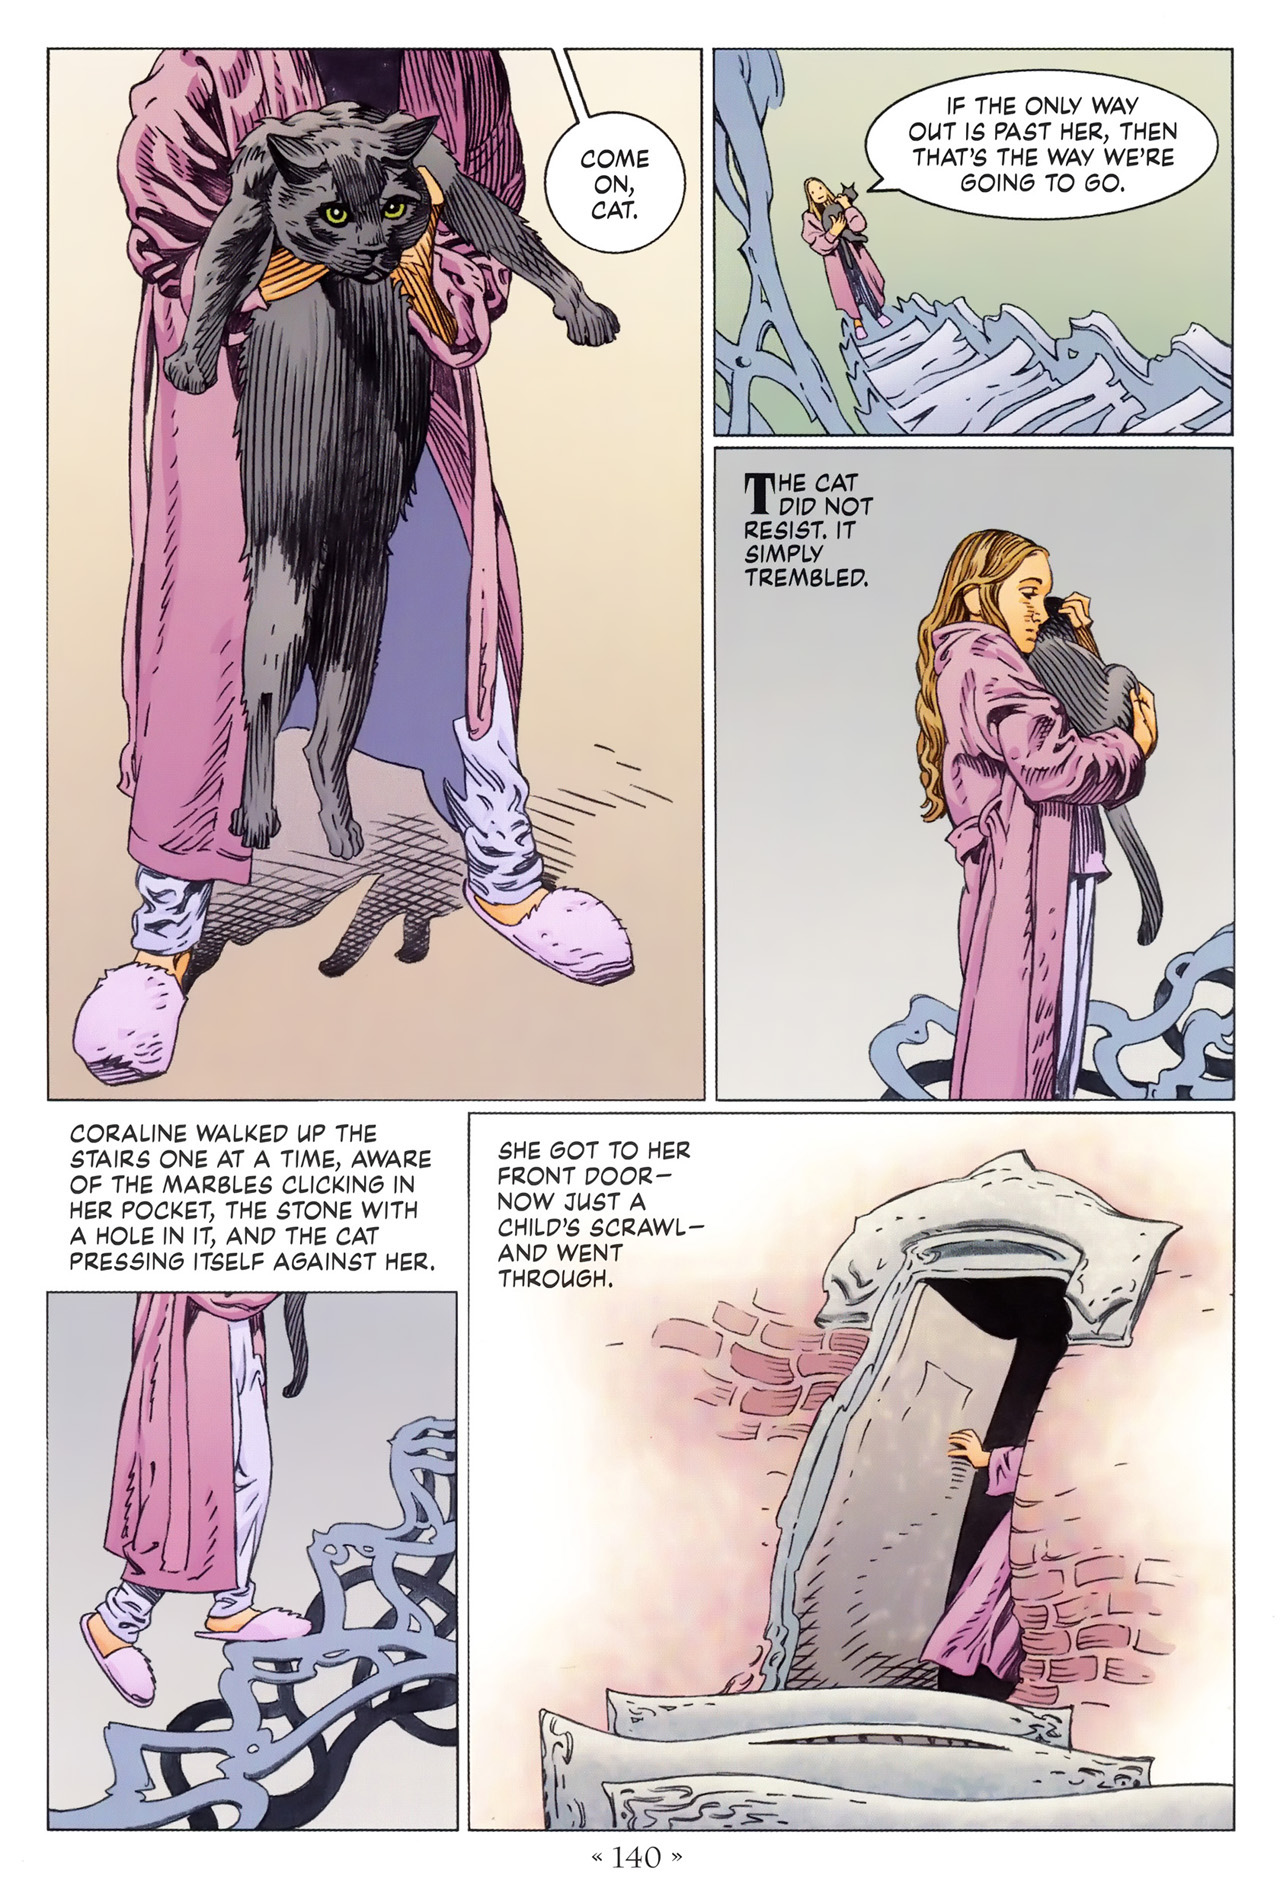 Read online Coraline comic -  Issue #1 - 146